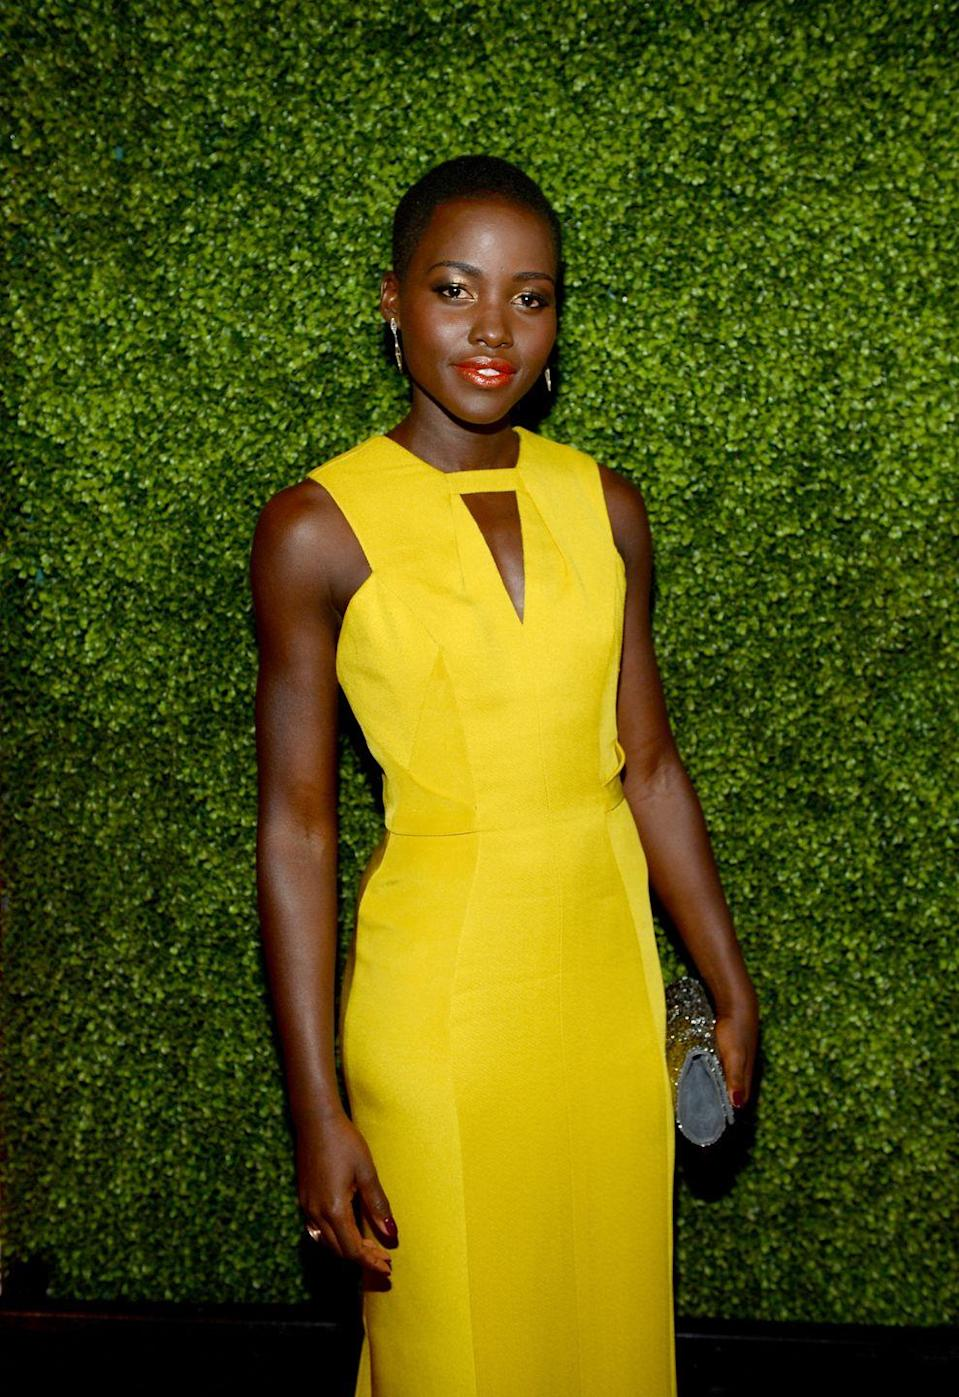 <p>N'yongo gives Maz her distinctive voice and flair, and while the stunning <em>Black Panther</em> star looks nothing like this elderly alien, N'yongo's movements were used as motion-captures to create the CGI visuals. </p>